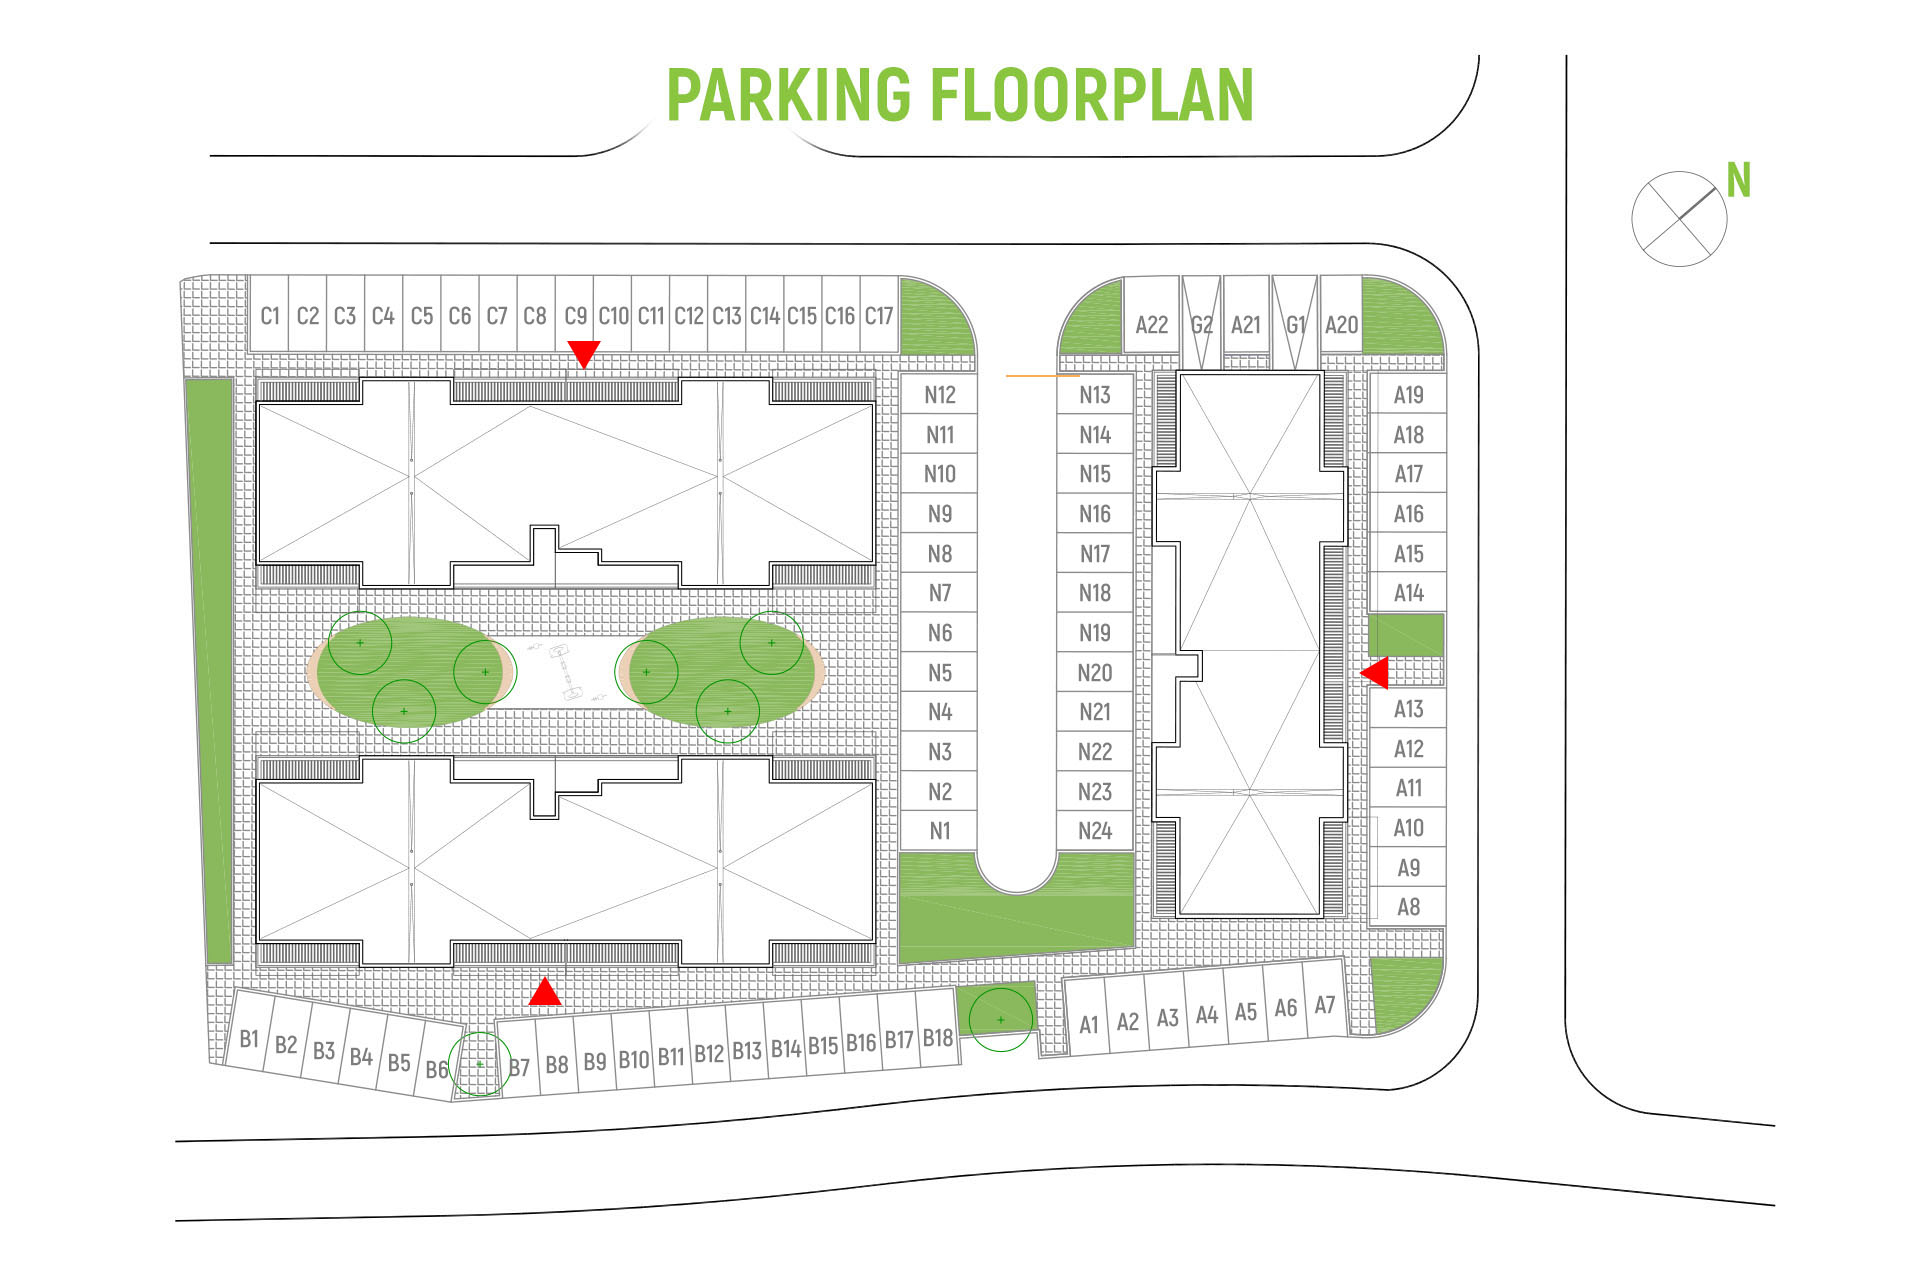 pa_parking-floorplan-eng.jpg